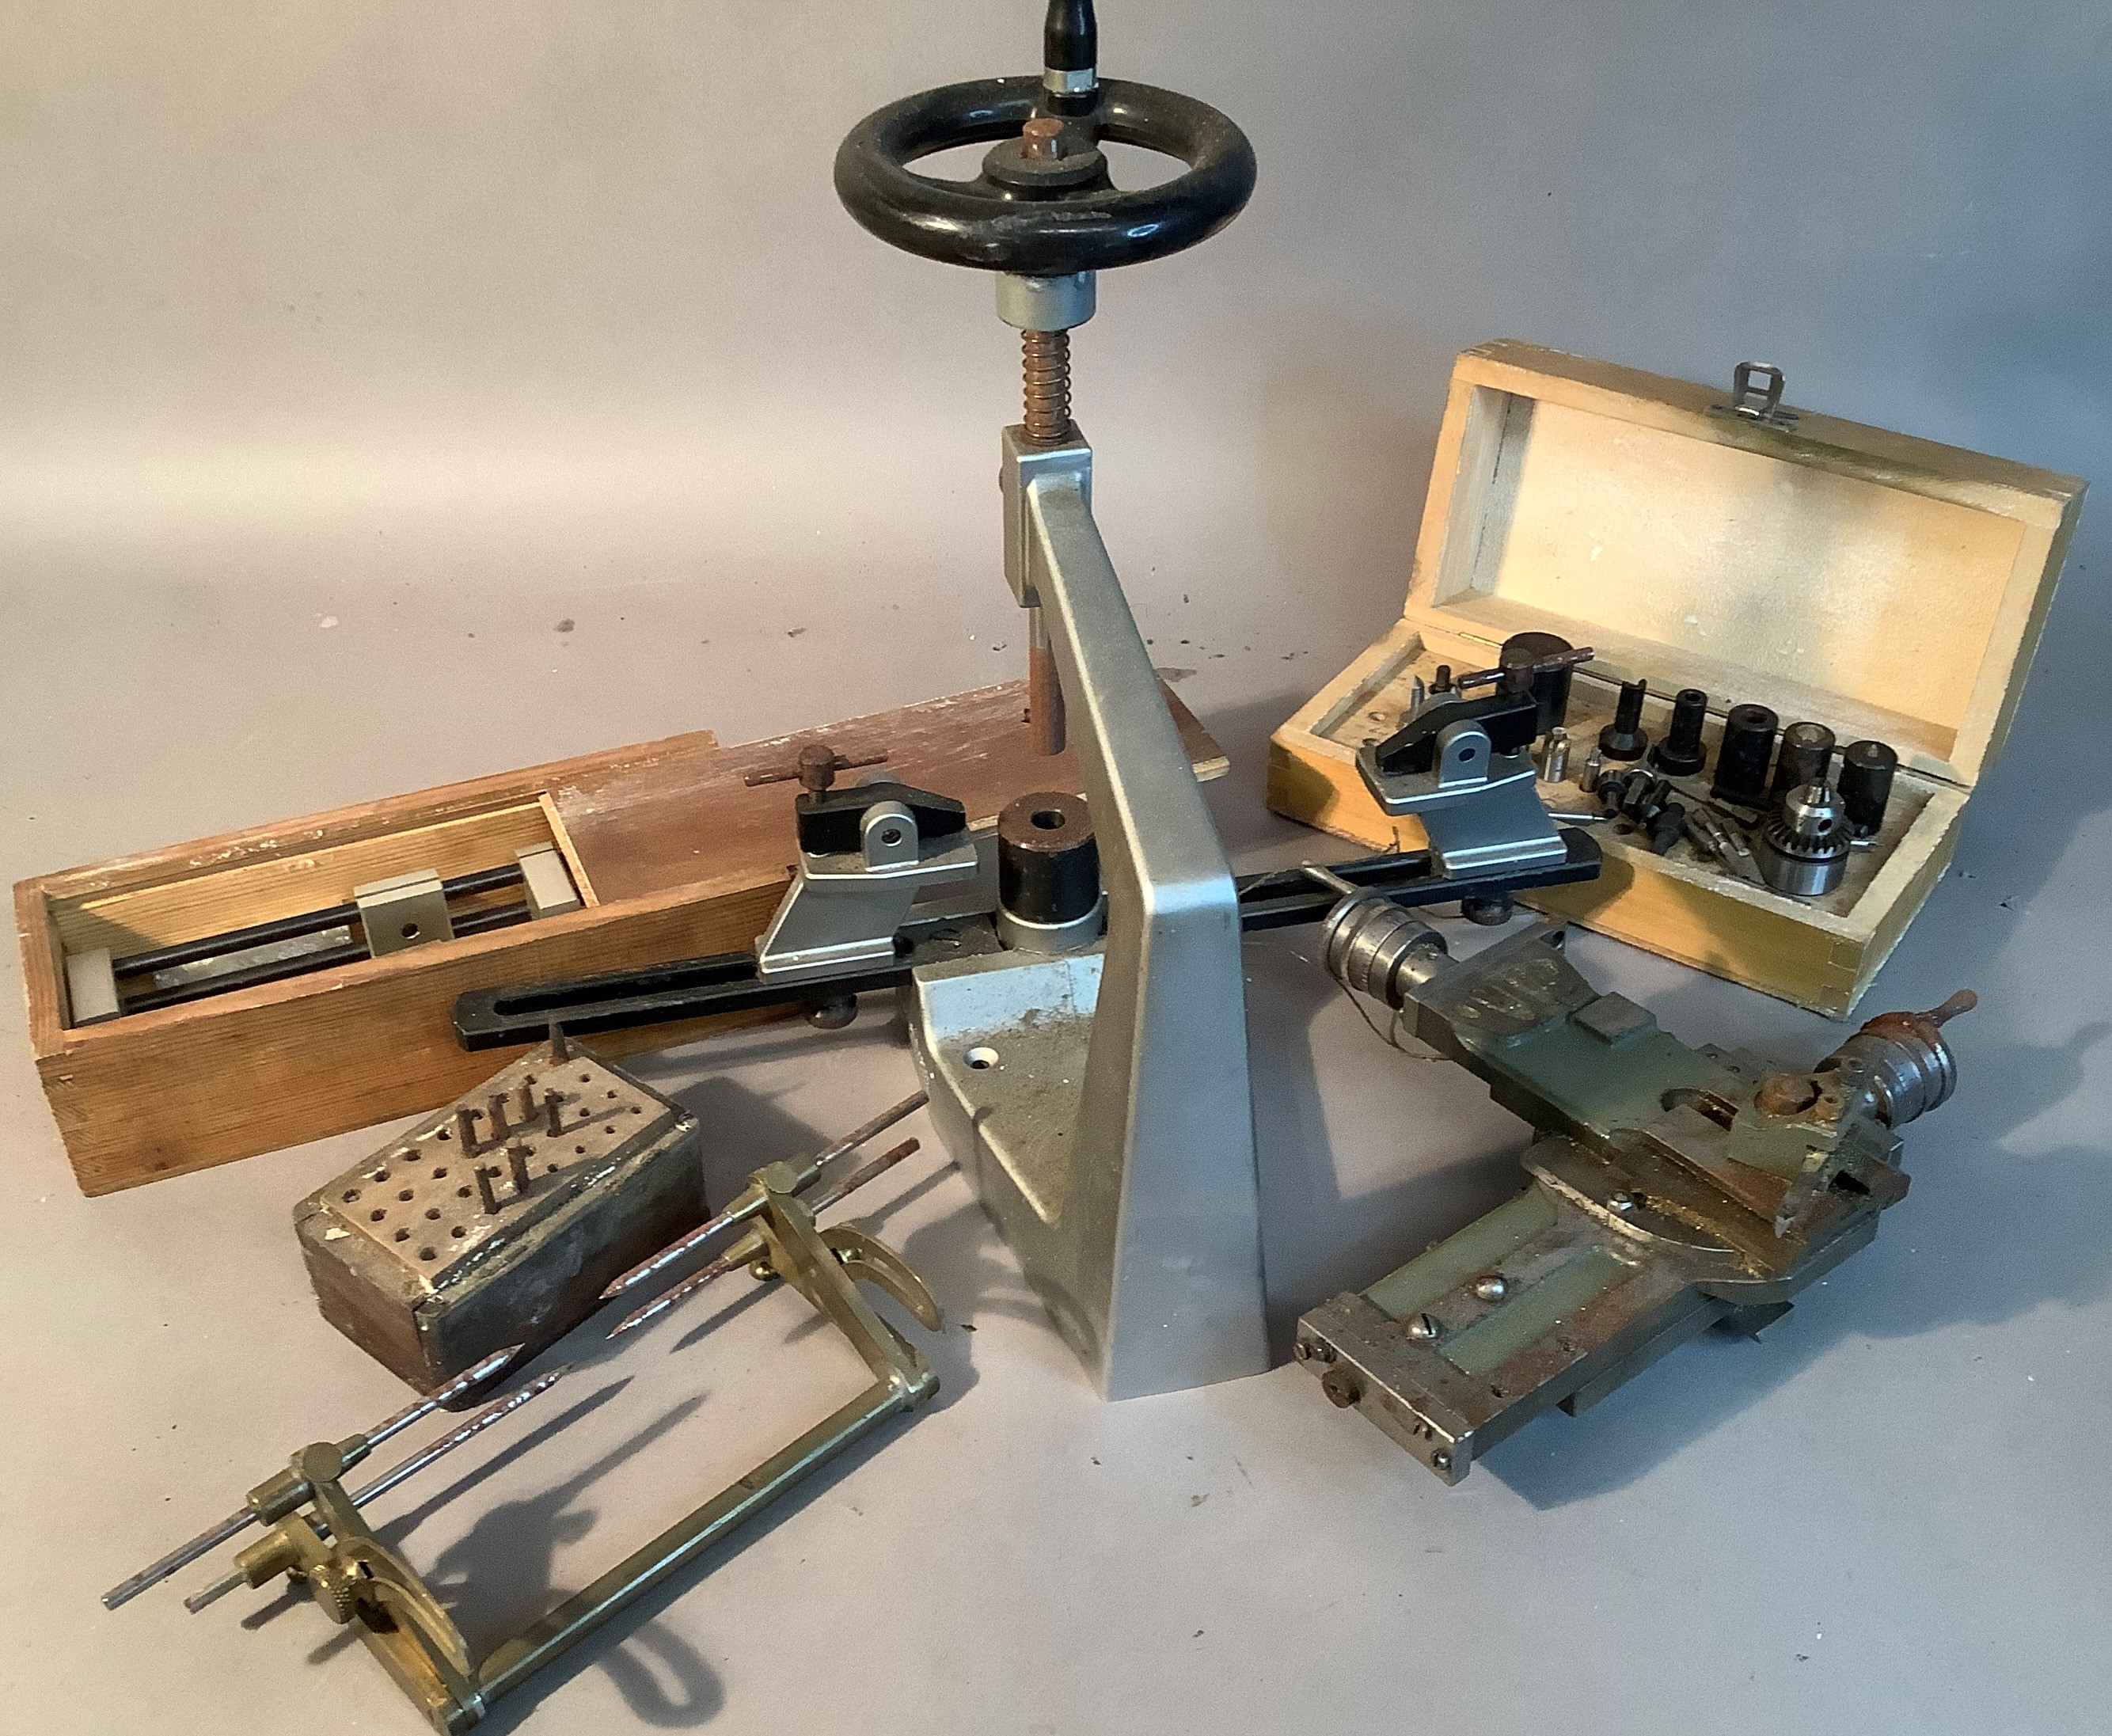 A Bergeon No6200 clock bushing tool with instruction booklet and some associated tools; together